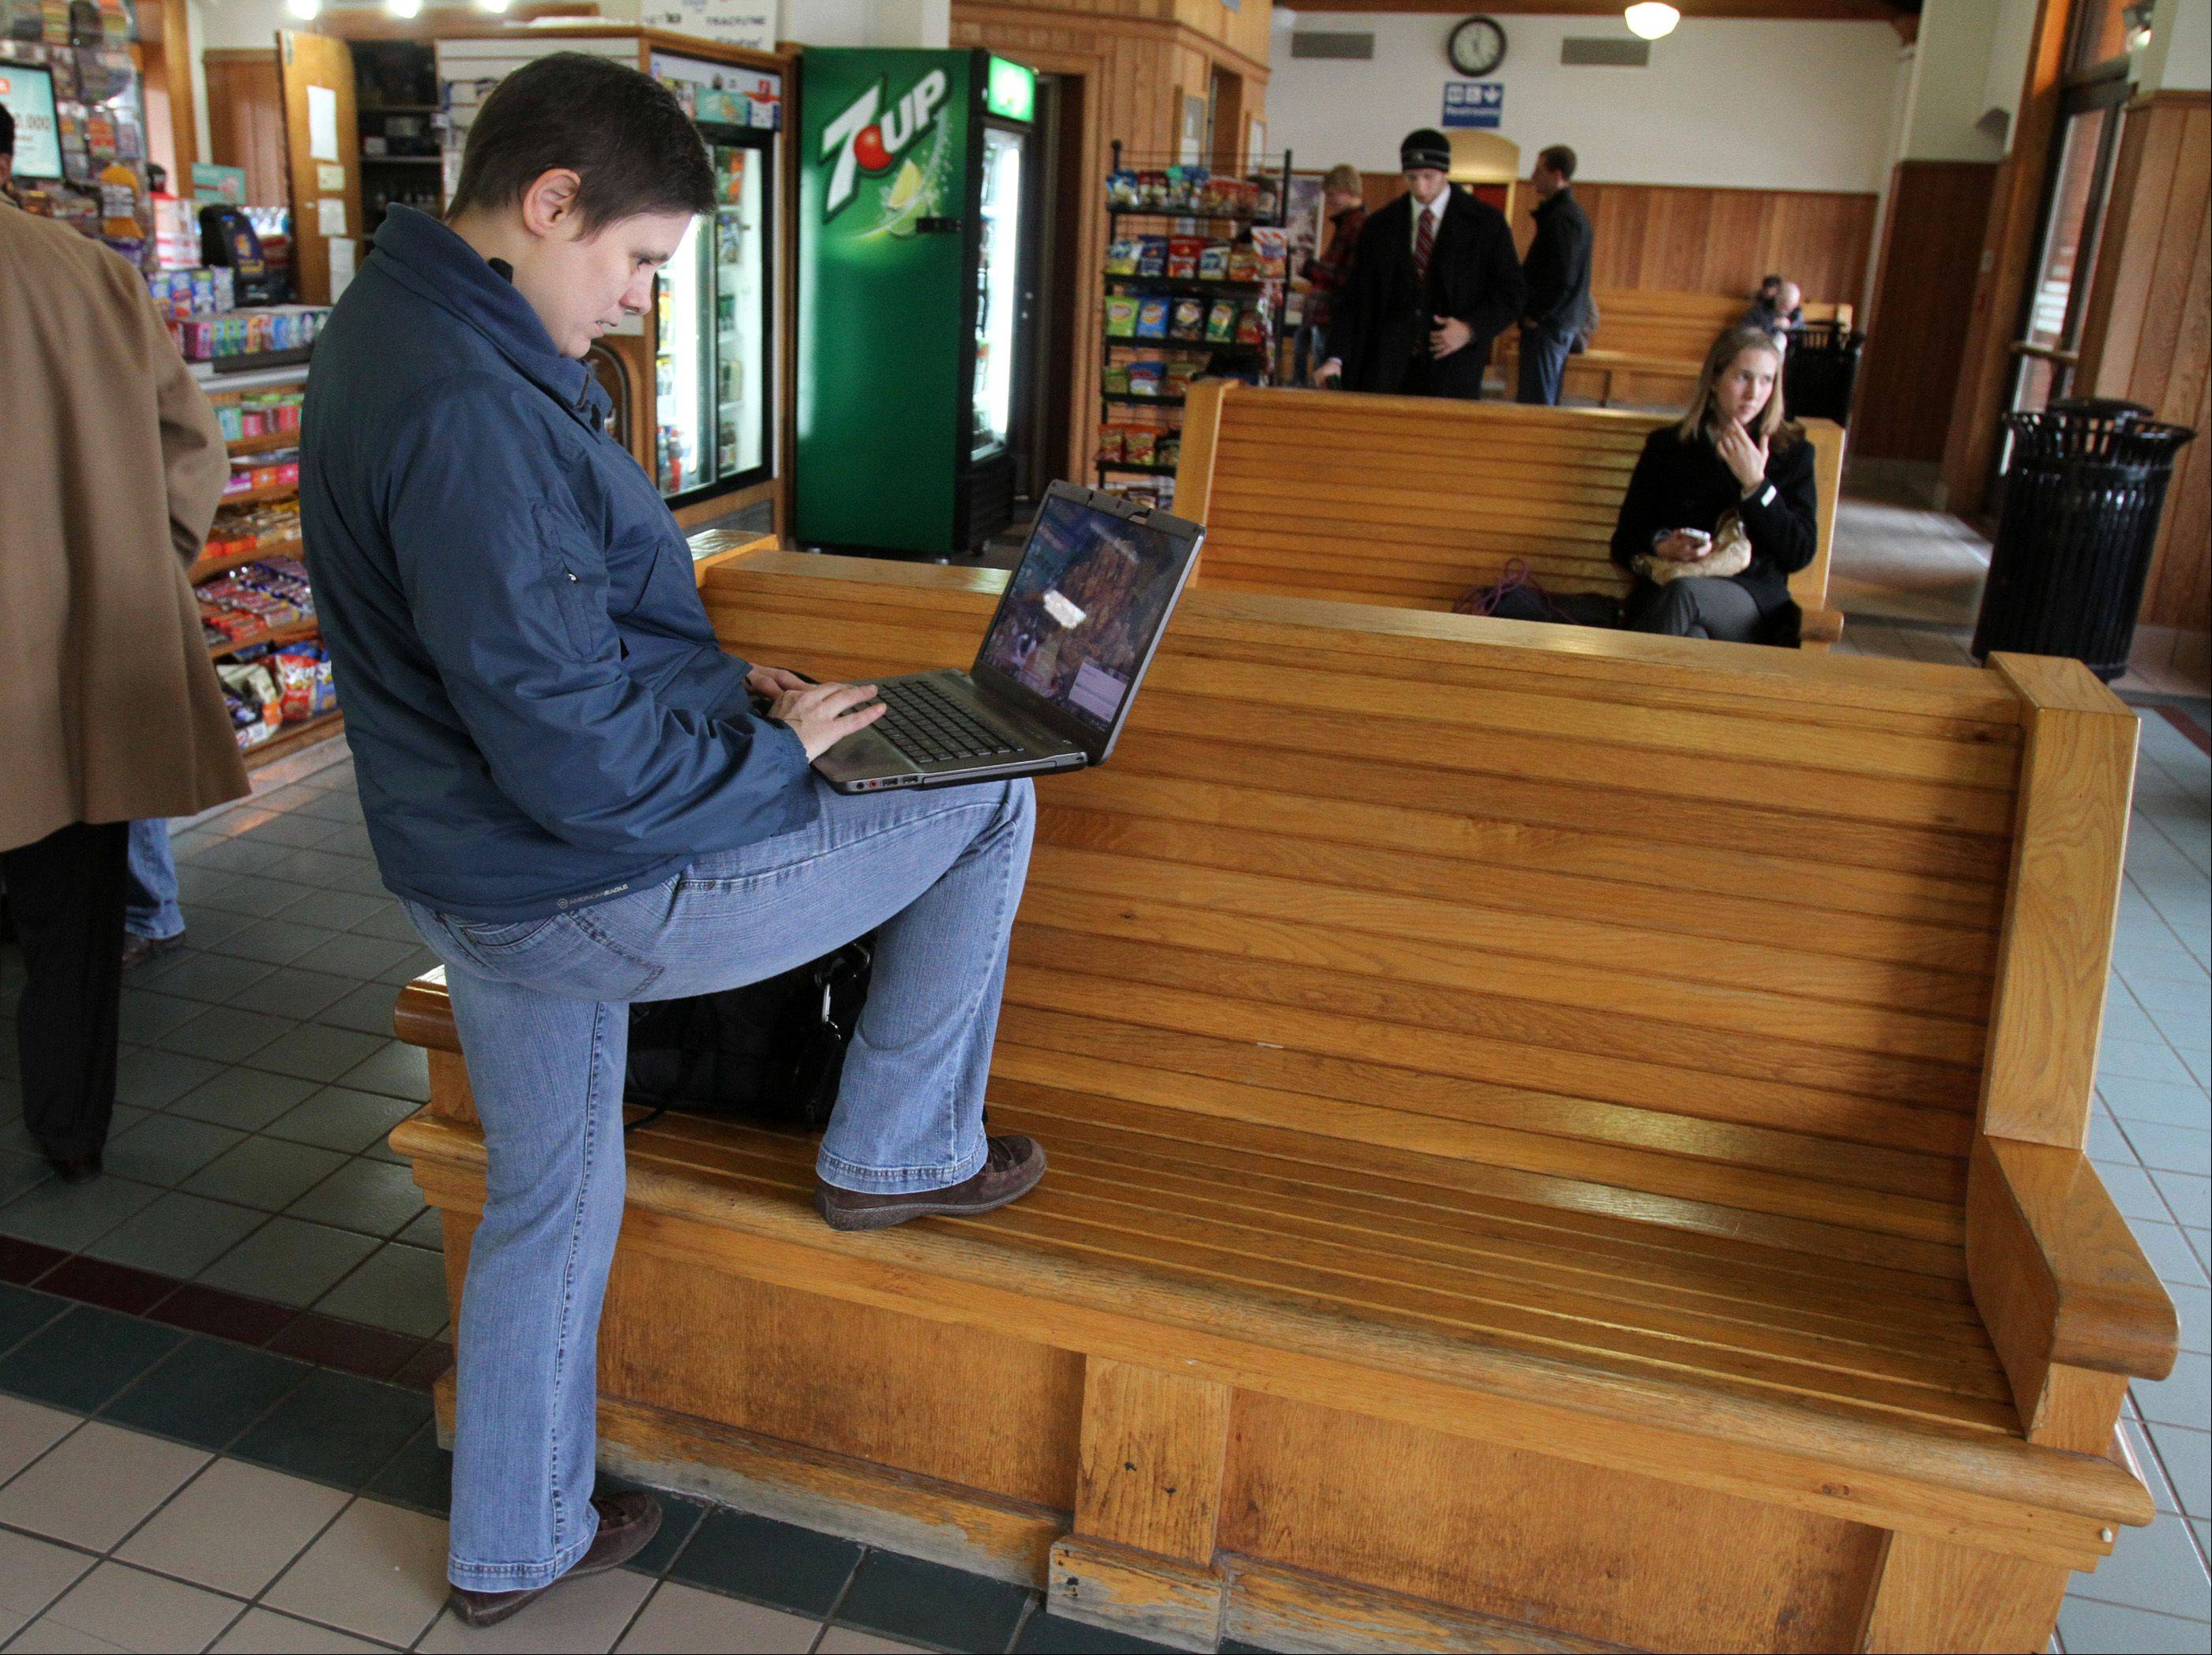 There's free Wi-Fi at the Arlington Heights Metra station -- but not onboard trains.